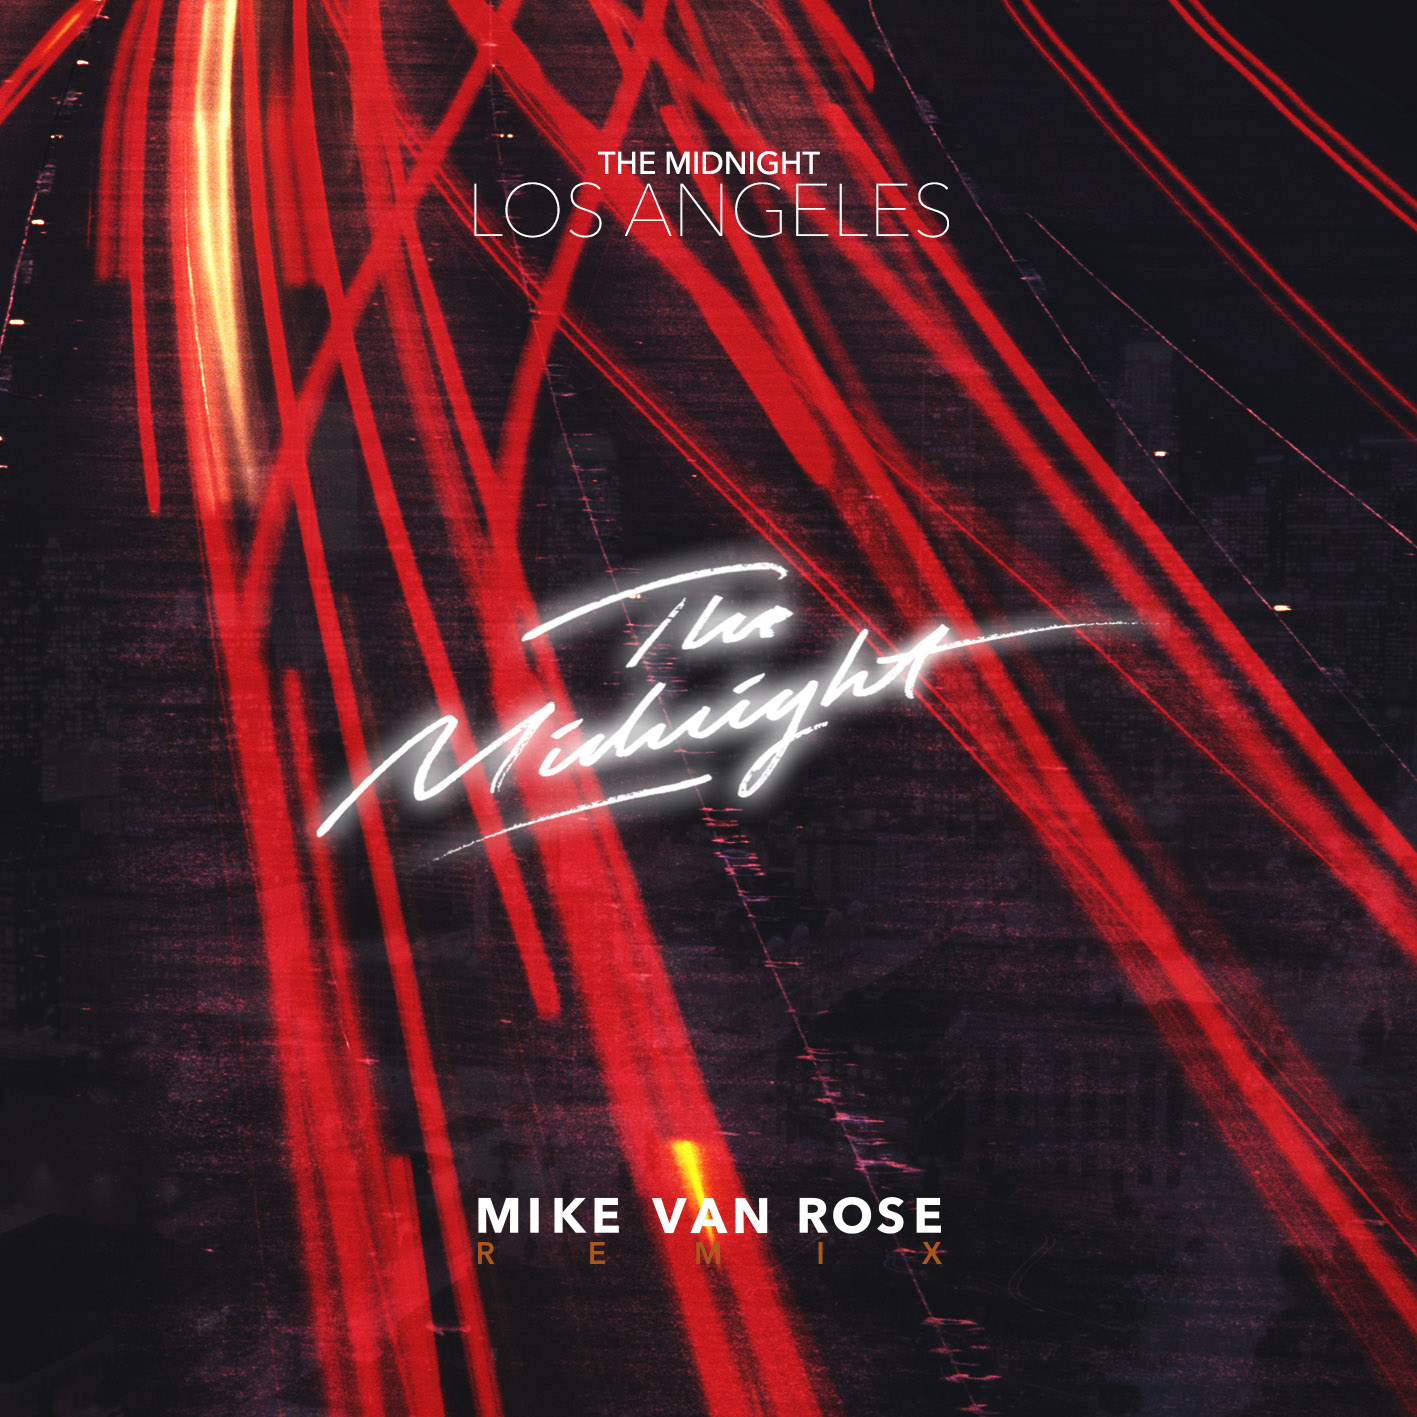 Los Angeles (Mike Van Rose Remix)